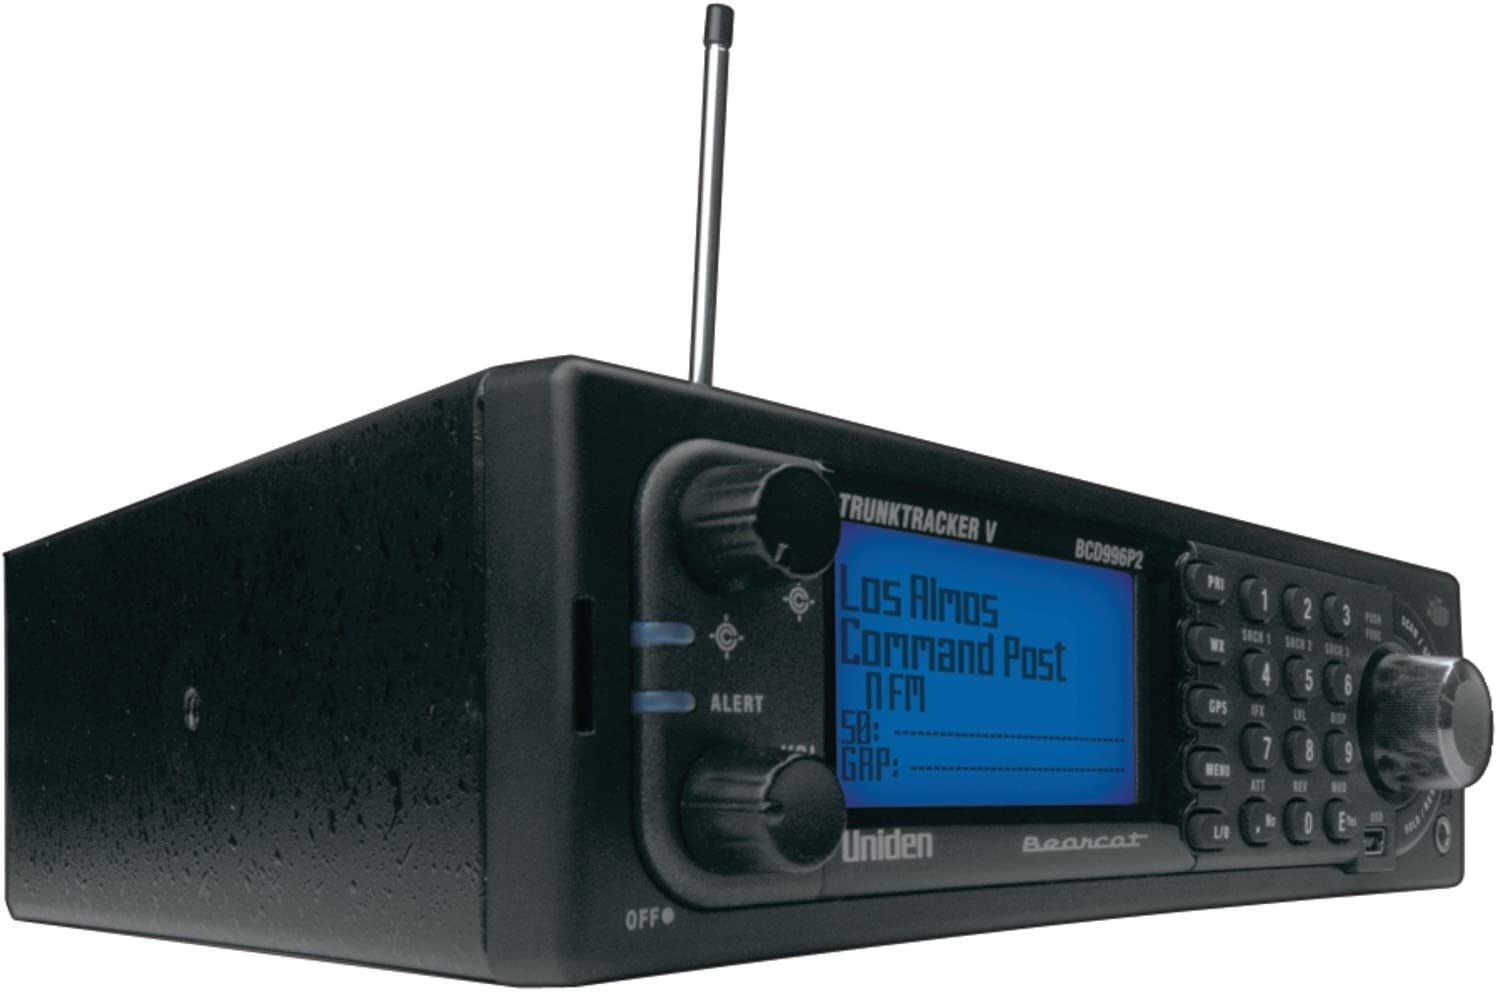 Uniden BCD996P2 Phase 2, Digital Mobile Scanner With Location based scanning and 25,000 Dynamically Allocated Channels